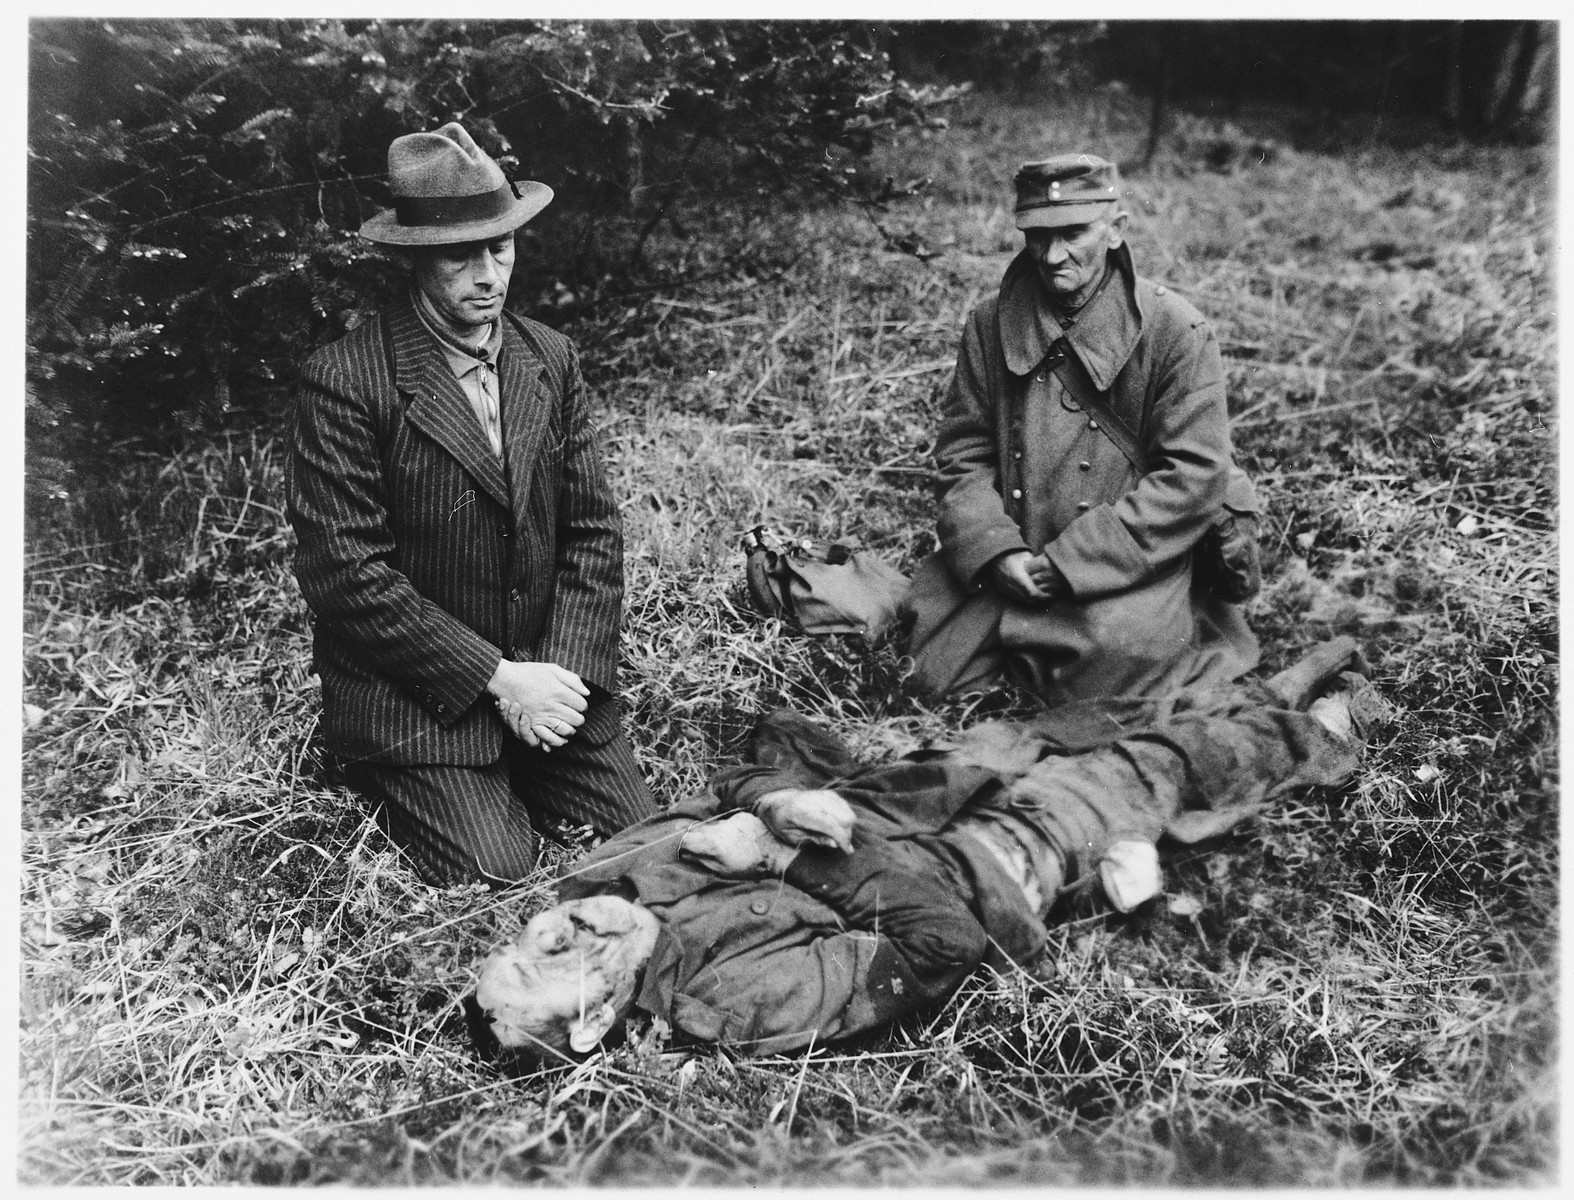 A Nazi party member from Hals and a German prison guard kneel beside the body of a Russian slave laborer who was killed by SS troops near Tiefenbach, near Passau.   They were forced to view the atrocity by U.S. Third Army troops.  The victim was one of 100 Russians interned in a barn in Oberjacking, a small village near Tiefenbach.